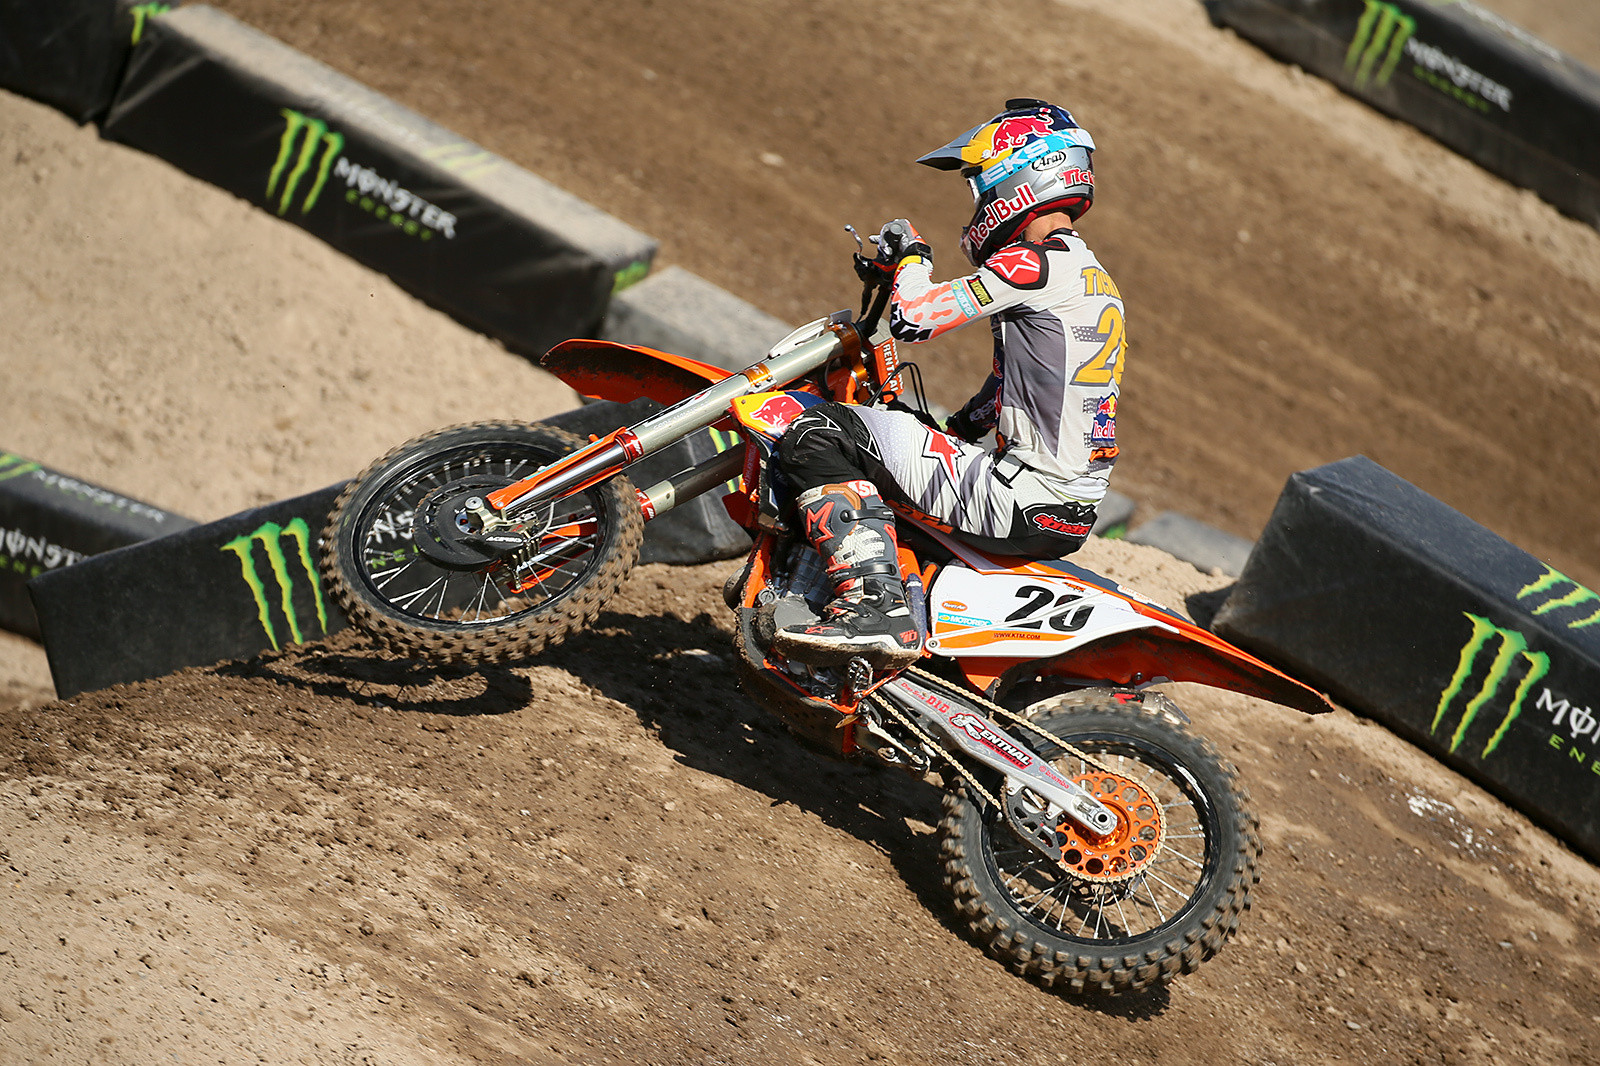 Deja vu from the last photo? Broc Tickle was showing off a lot of new here, with the Red Bull KTM, and a new deal with Alpinestars.